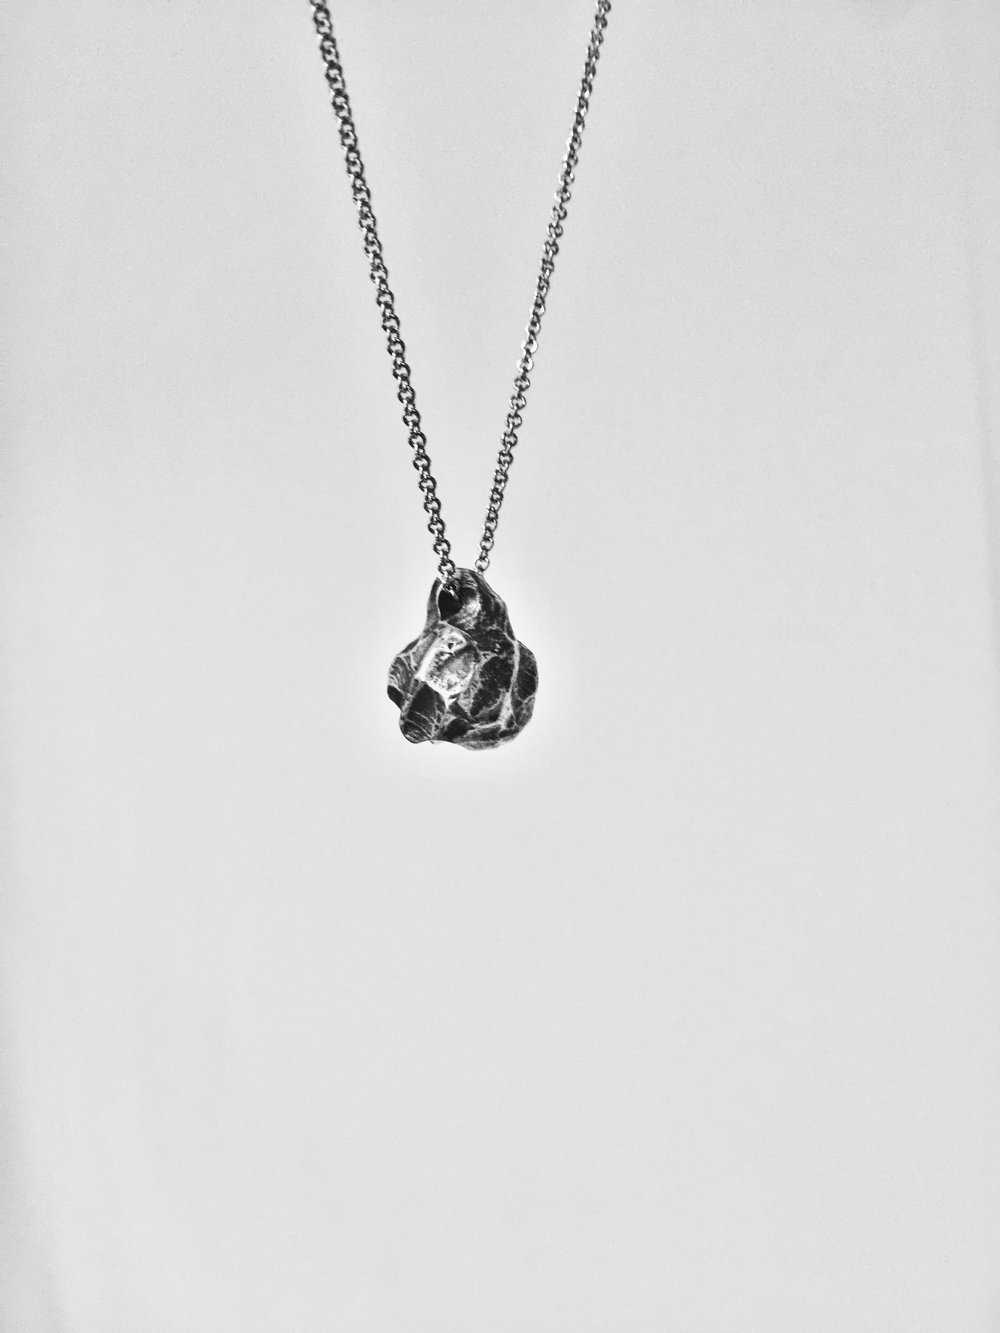 925 Sterling Silver Necklace - Meteorite - DROP